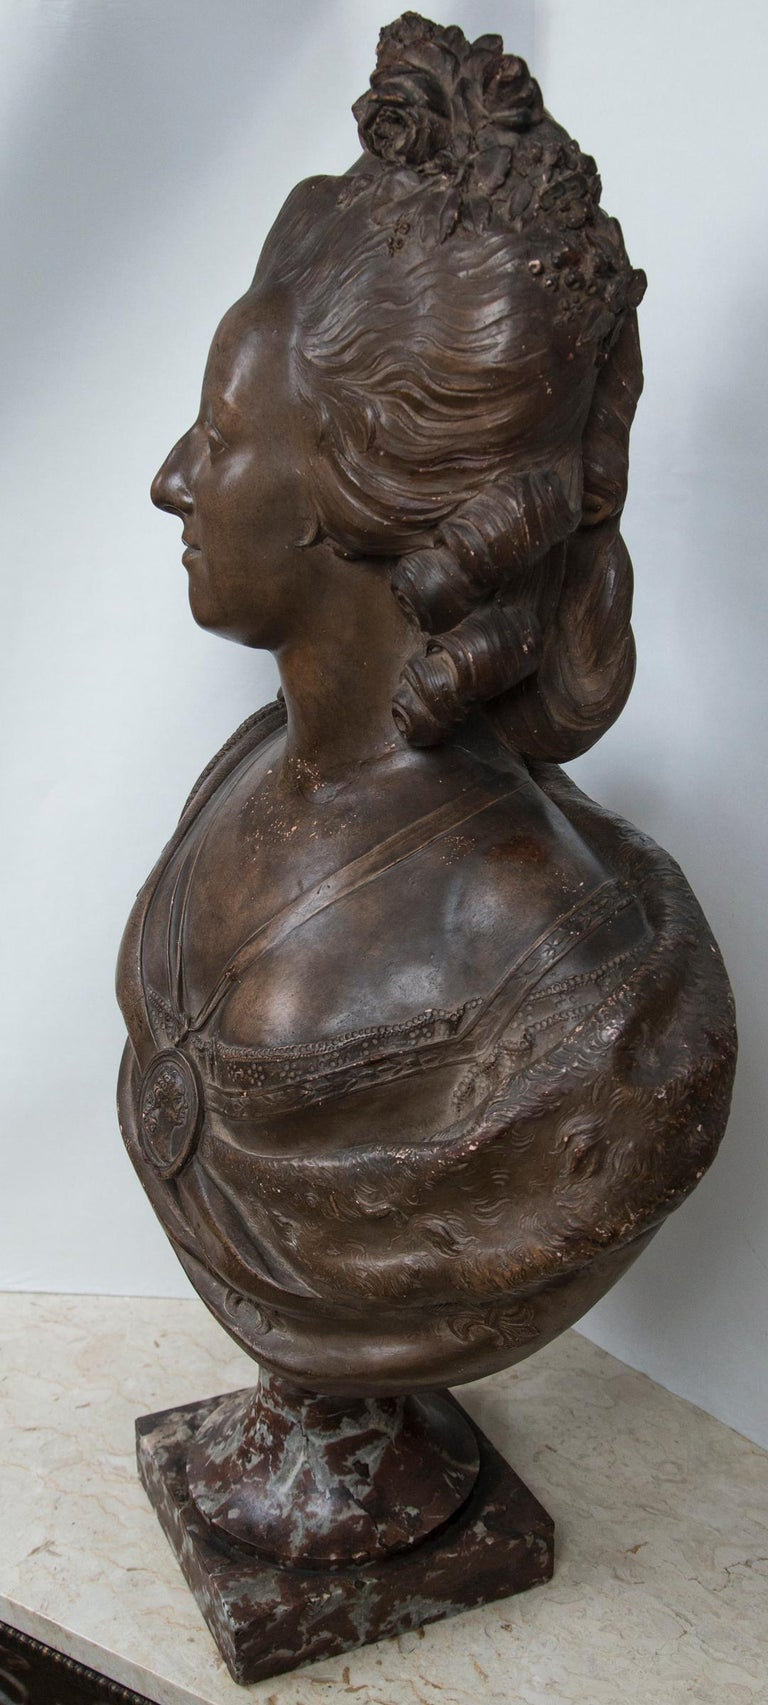 With dark glazed finish. After the original by Felix Lecomte, (1737-1817) Marble base.